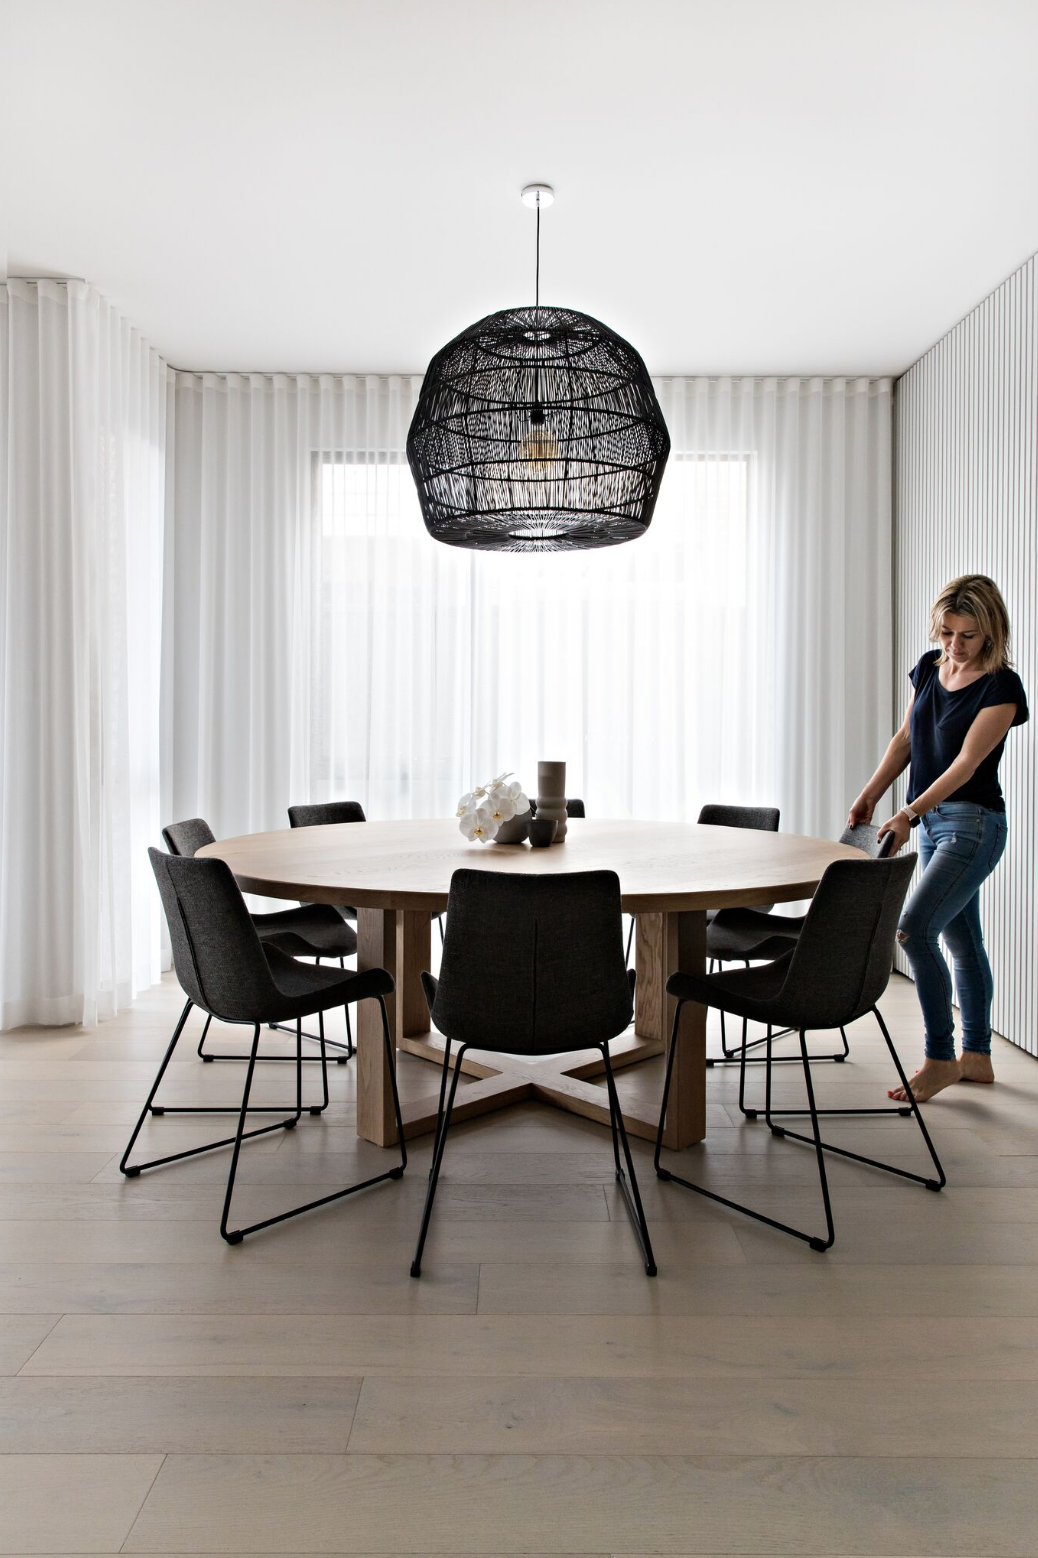 Round Dining Table Scandi Dining Room Round Dining Room Round